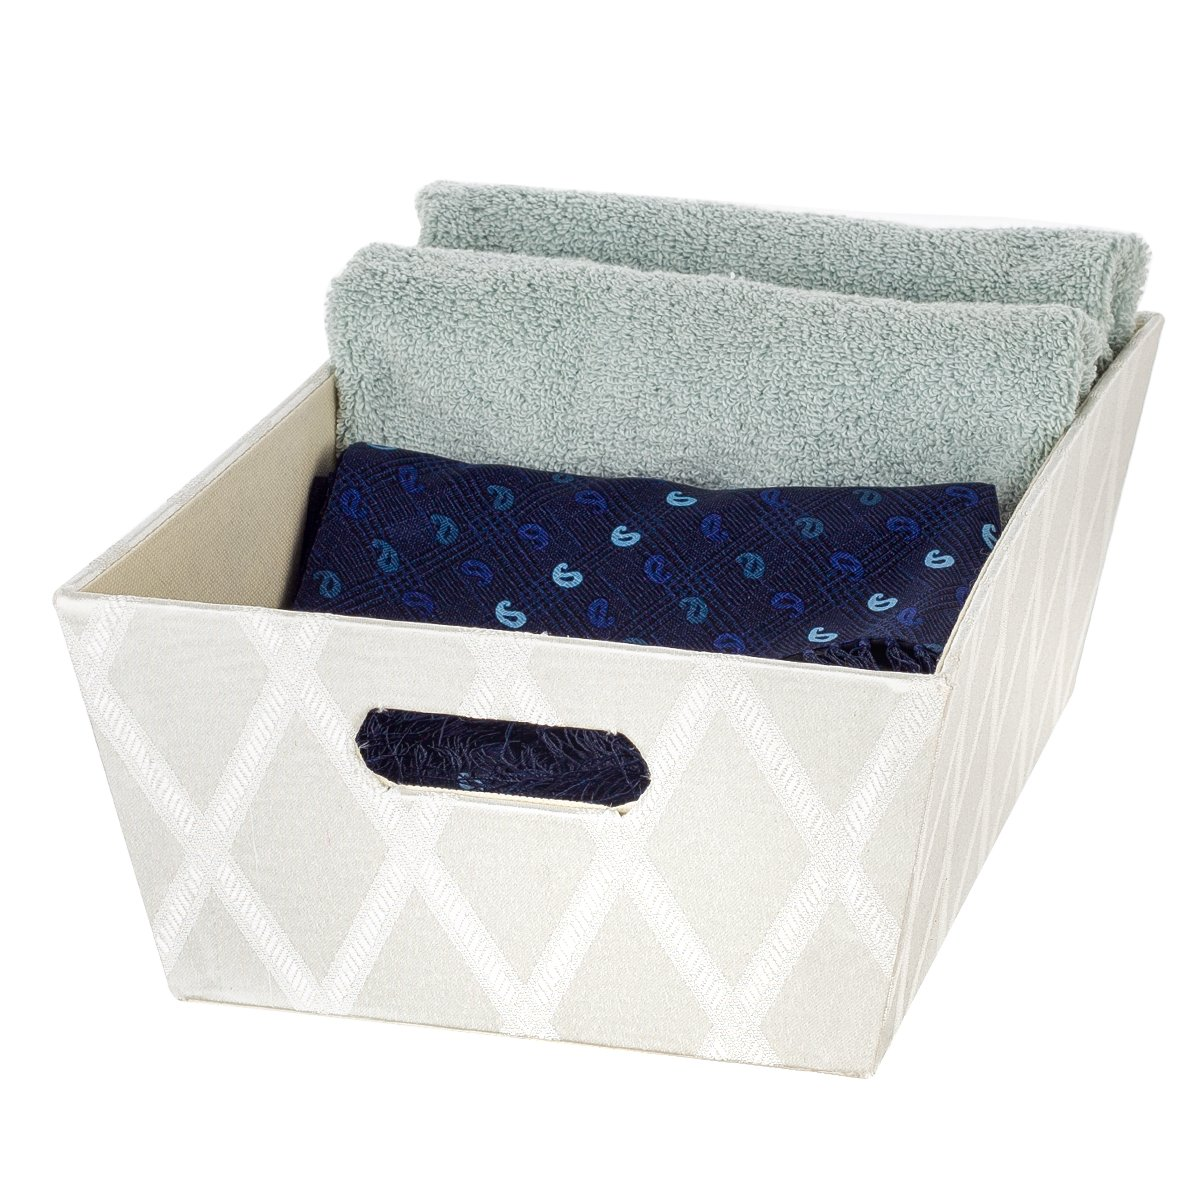 Creative Scents Galliana Decorative Storage Box with Moisture-Proof Interior | Heavy Duty Fabric Organizer Bin | Ample Space for Closet Organization, Toys, Laundry, Books & More White